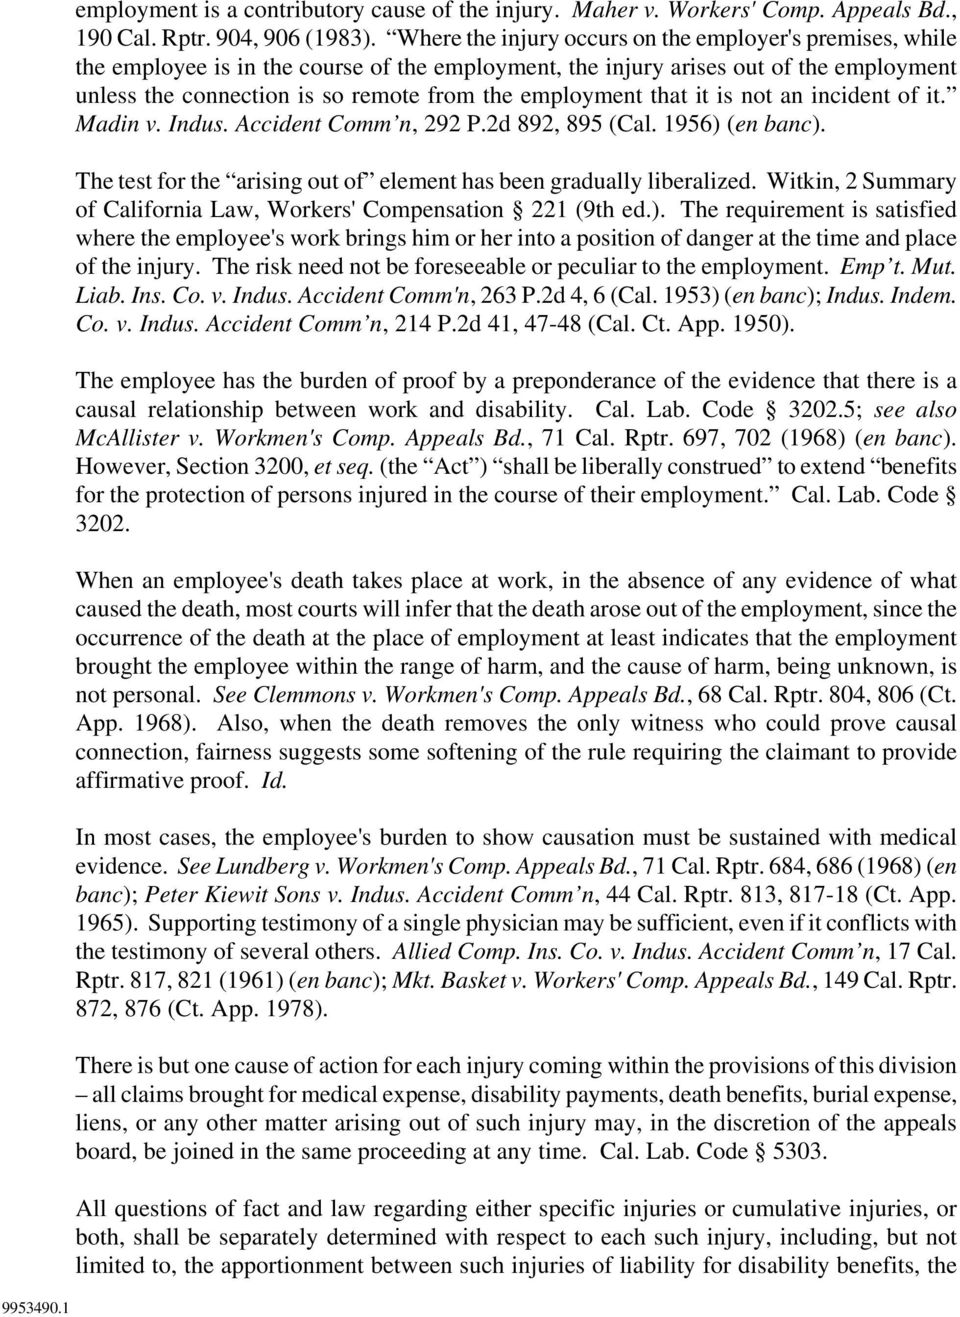 employment that it is not an incident of it. Madin v. Indus. Accident Comm n, 292 P.2d 892, 895 (Cal. 1956) (en banc). The test for the arising out of element has been gradually liberalized.